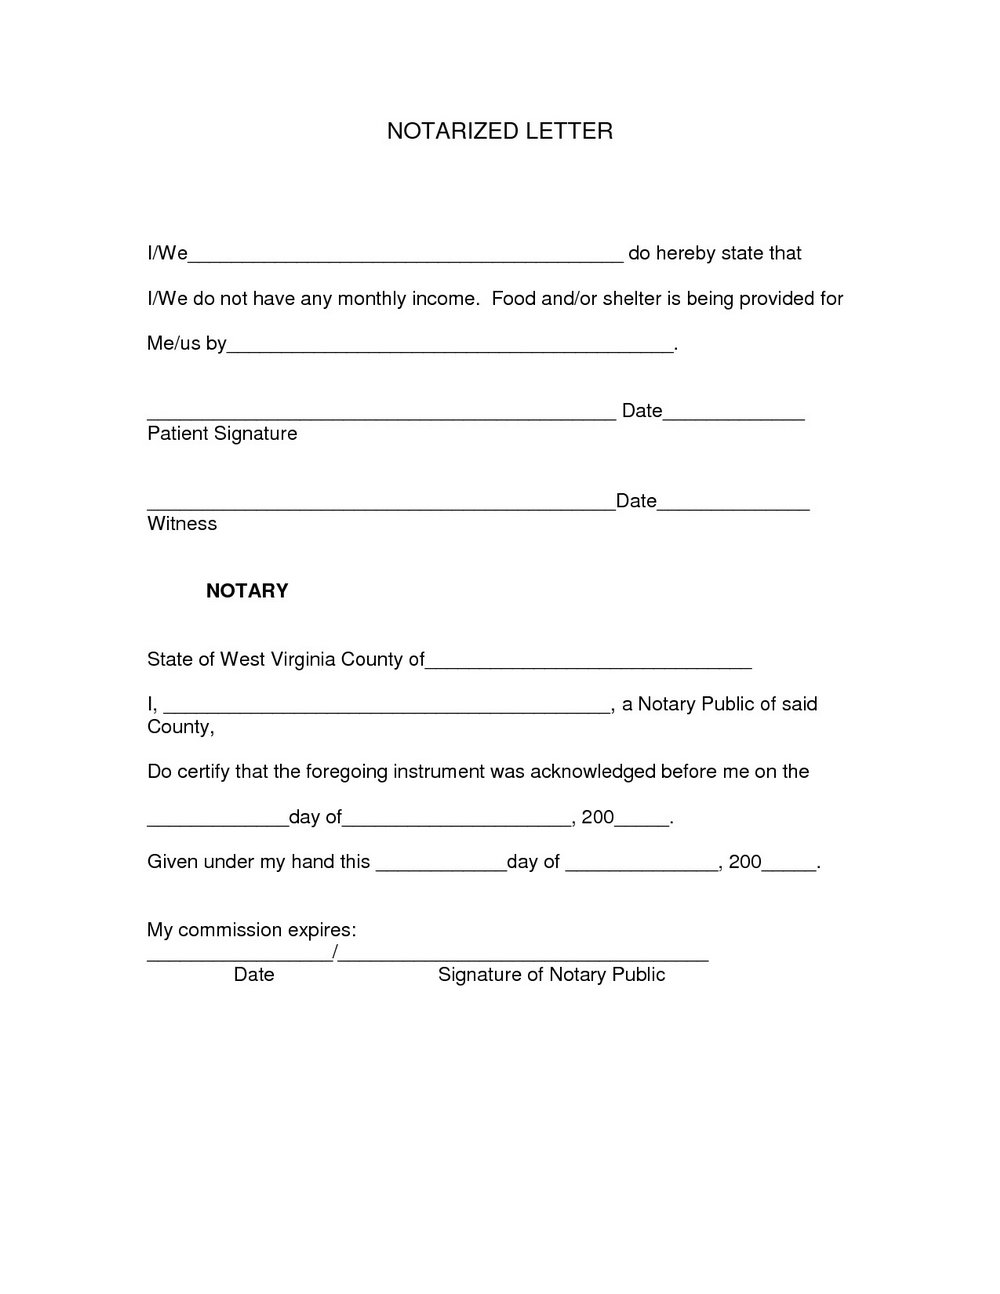 Notarized Document Template